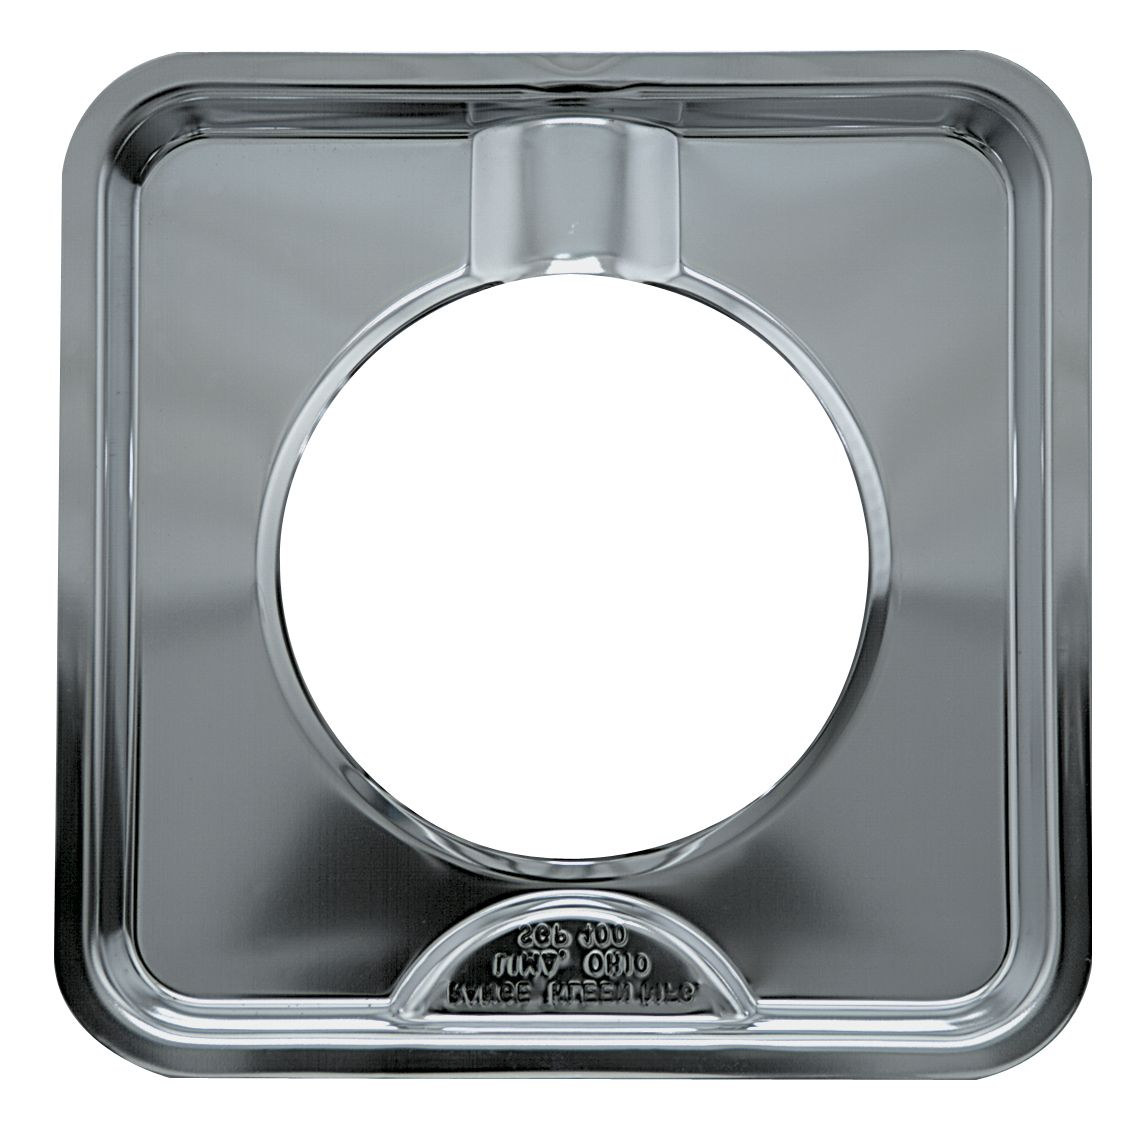 Range Kleen Square Gas Range Drip Pan, Chrome